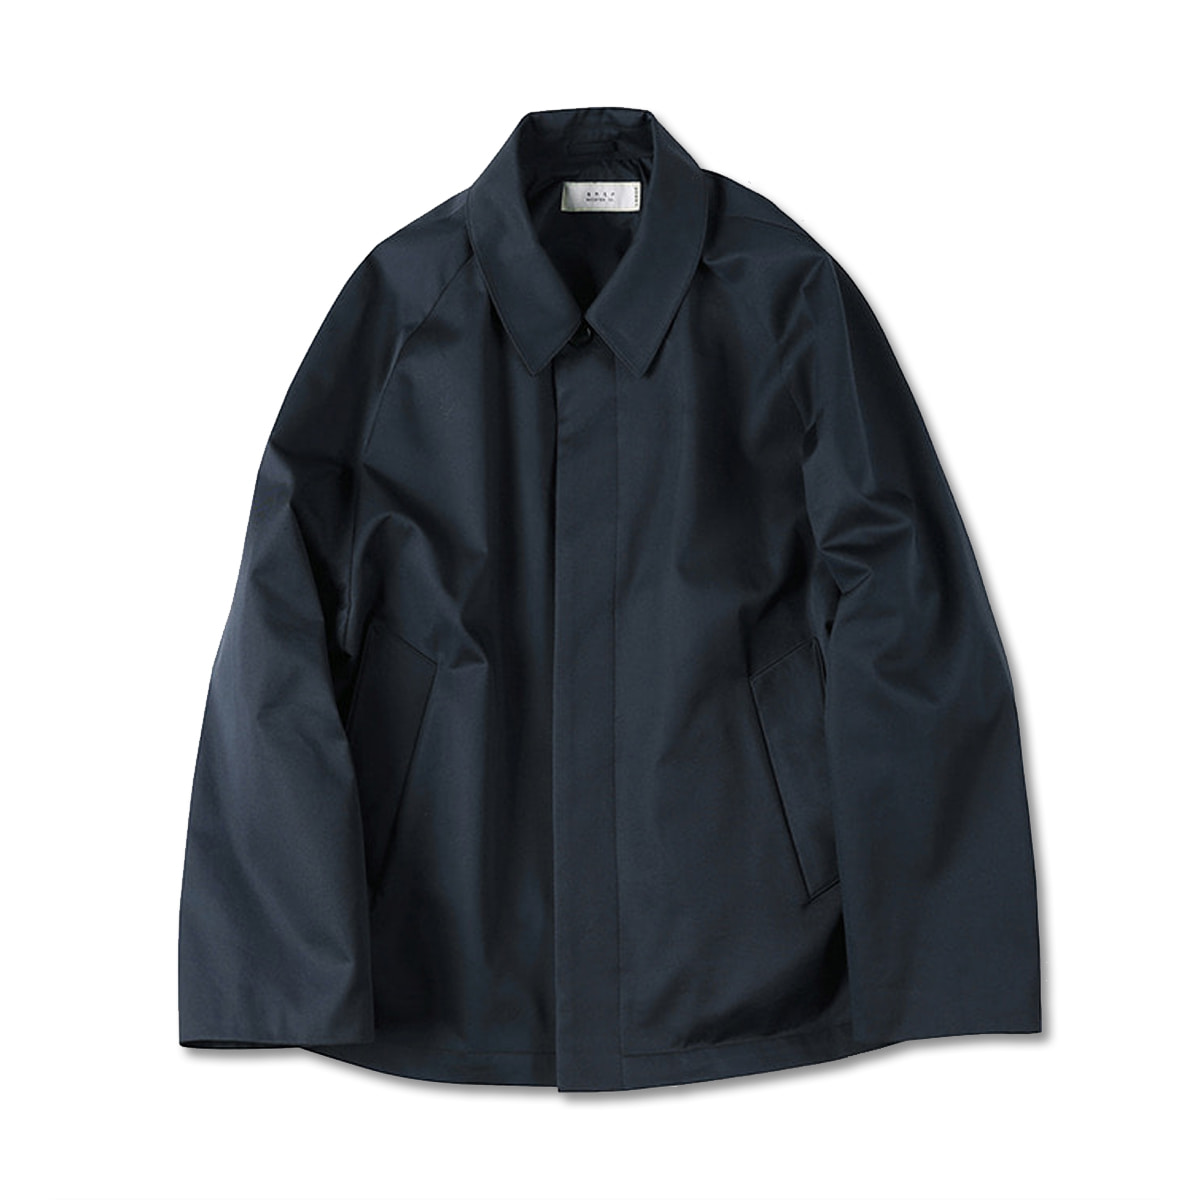 [SHIRTER] SUPIMA COTTON JACKET 'NAVY'